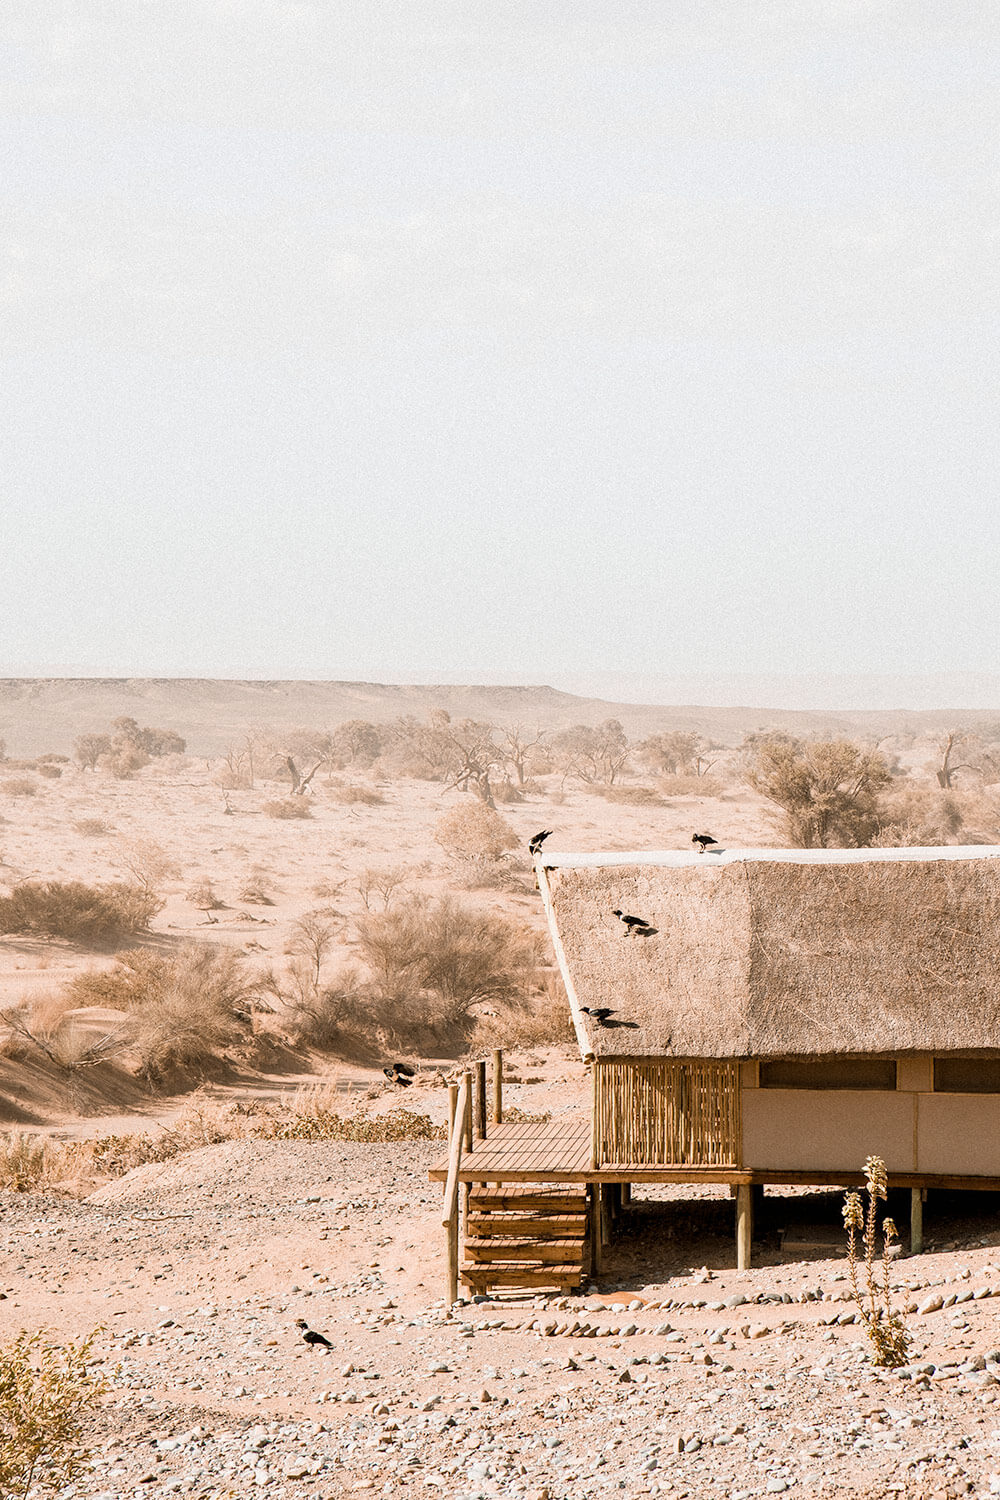 A 'Kulala' or individual accommodation of the Kulala Desert Lodge